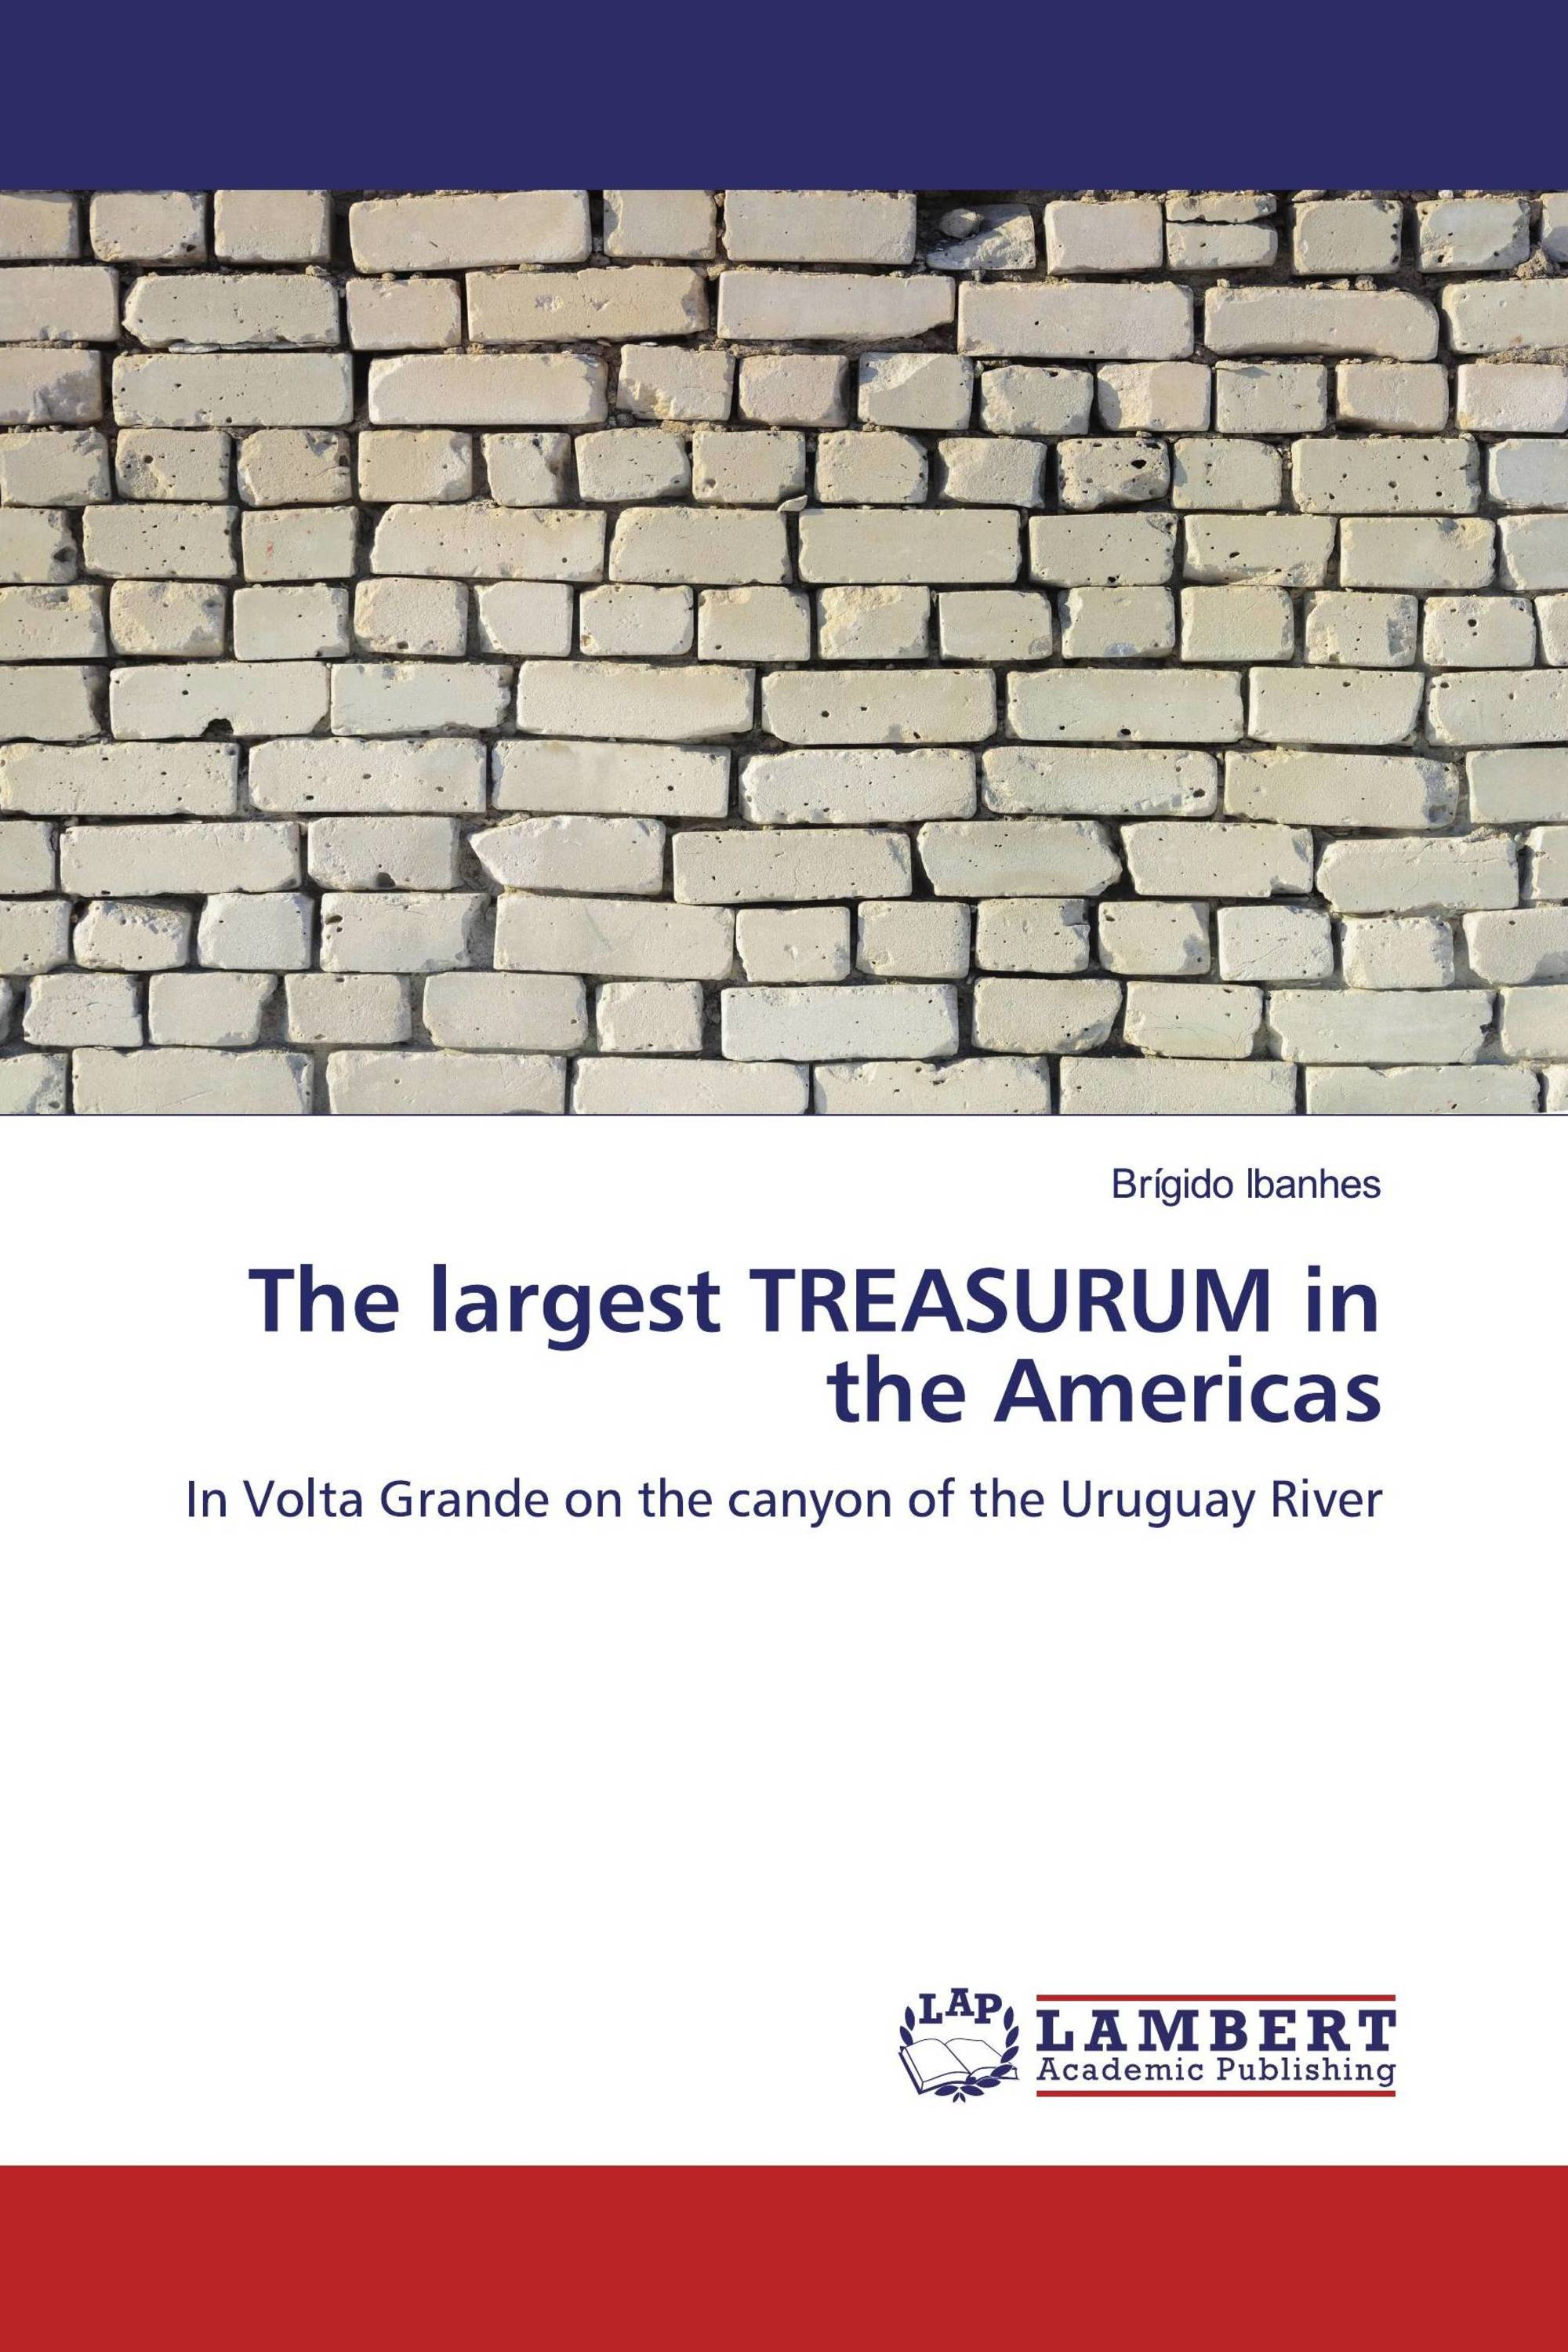 The largest TREASURUM in the Americas